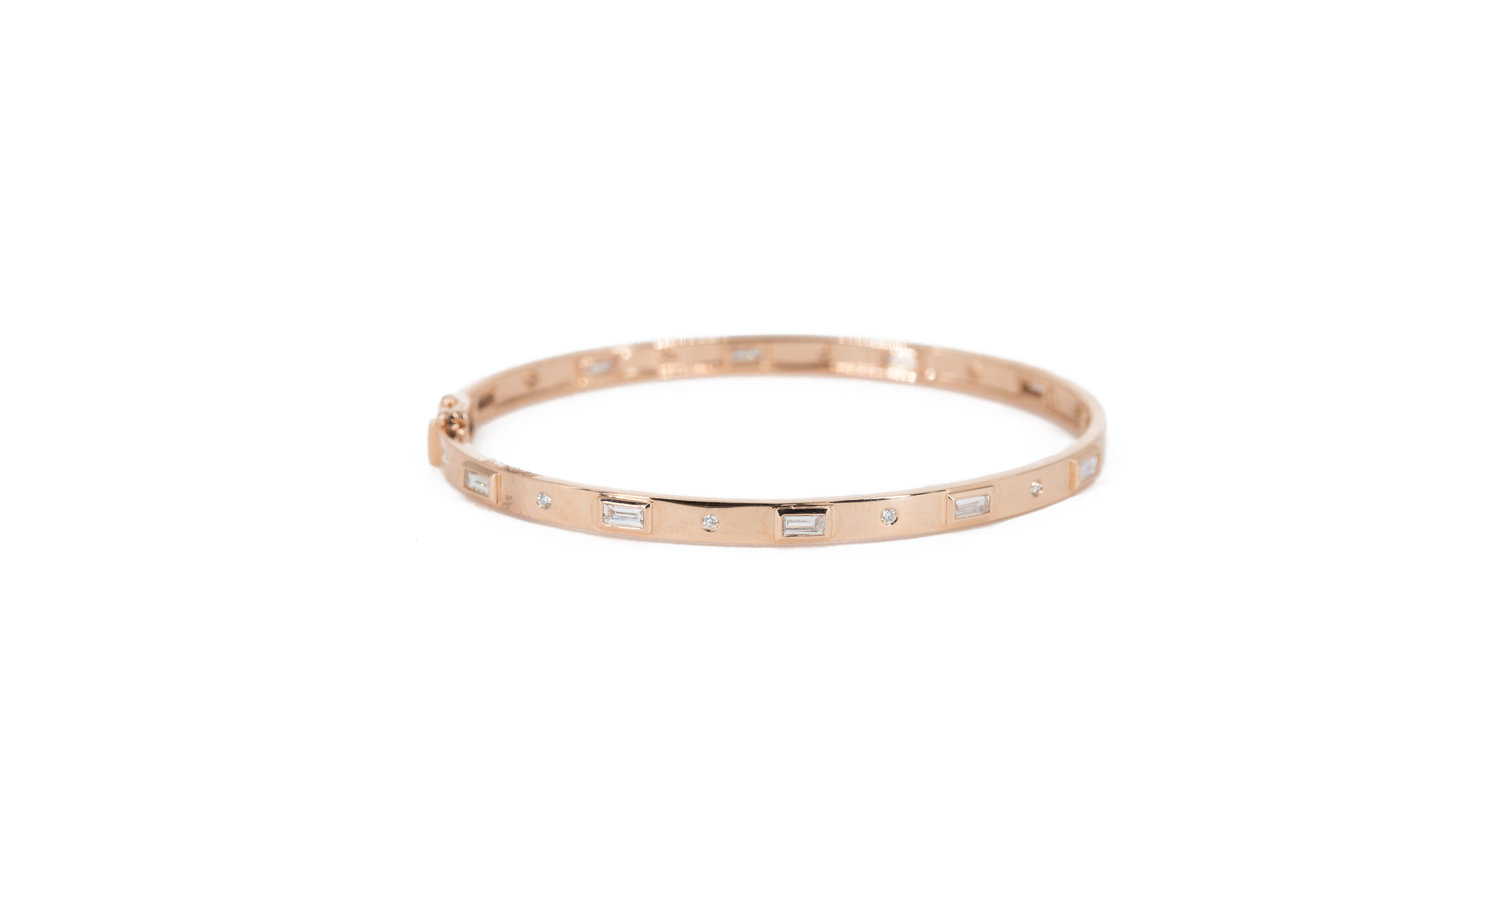 13d375a3b8023 14KT Rose Gold Baguette and Diamond Bangle